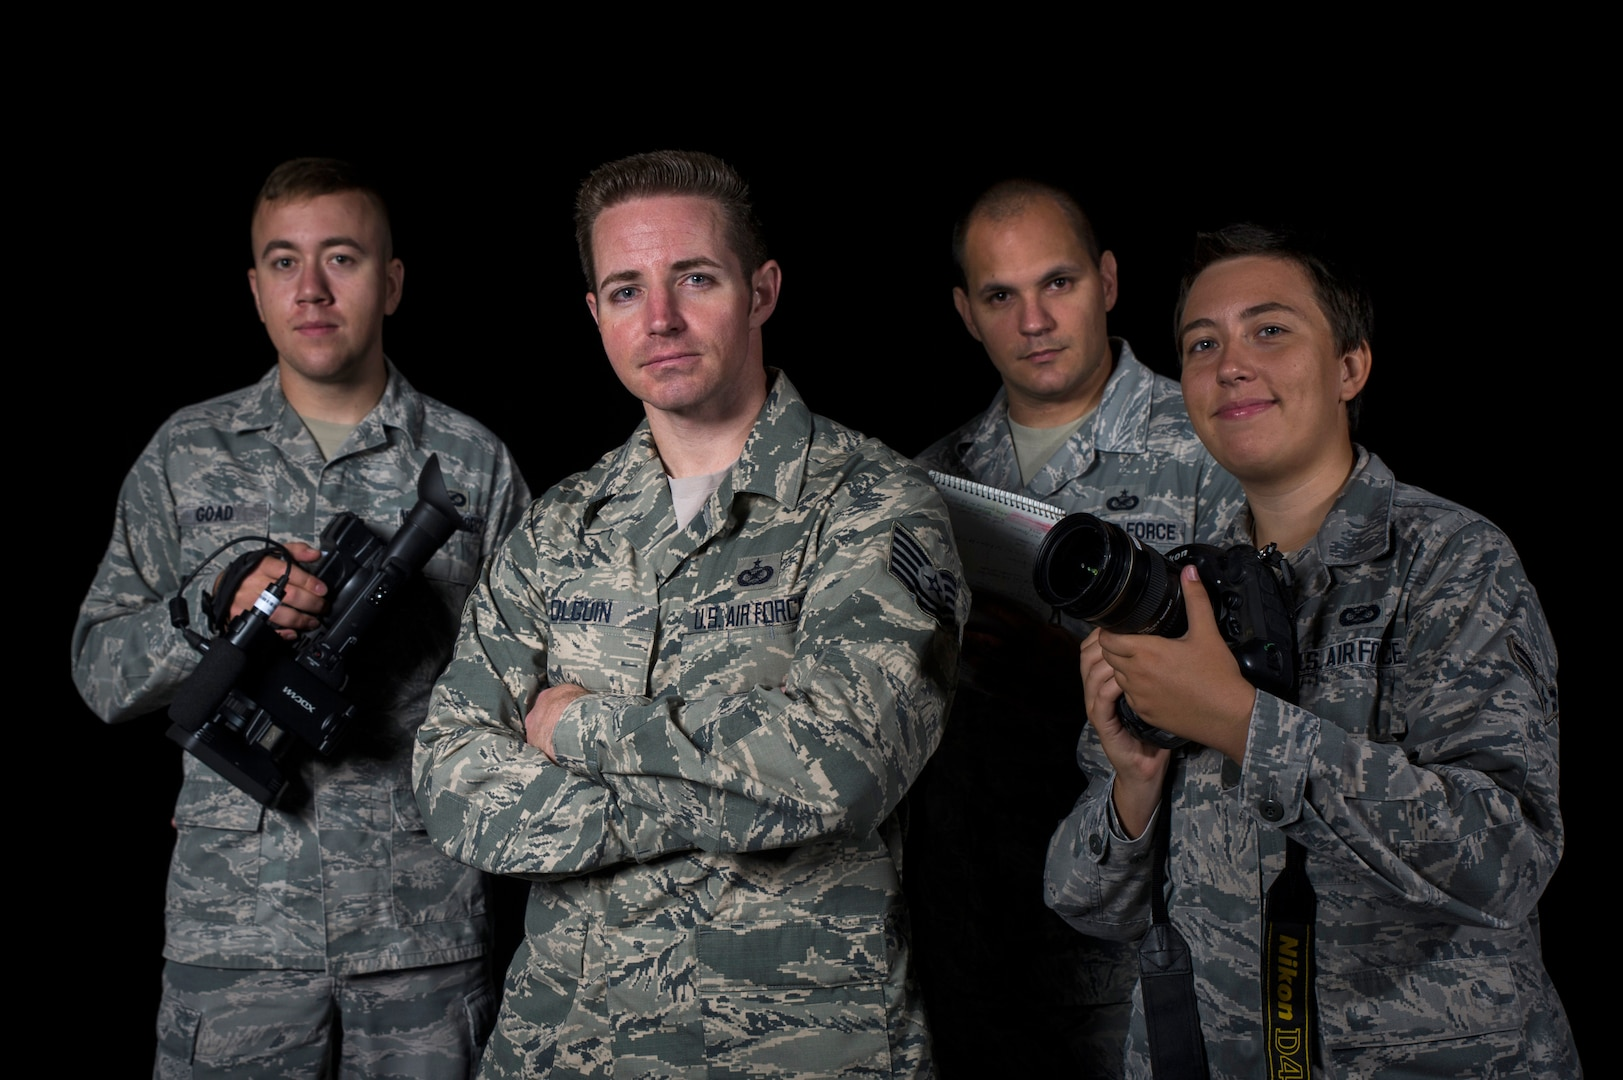 A four-Airman combat camera team of photojournalists and broadcasters from the 3rd Combat Camera Squadron, Joint Base San Antonio-Lackland, Texas, is visiting critical Air Force Space and Cyber missions throughout September.Senior Airman Alex Goad, Tech Sgt. Scott Olguin, Staff Sgt. Jarrod Chavana, and Airman 1st Class Krystal Ardrey (left to right), will travel around Air Force Space Command highlighting the mission and the people of AFSPC.  Their work will be posted on the Air Force Space Command website, Facebook page and on Twitter @afspace under #30daysAFSPC